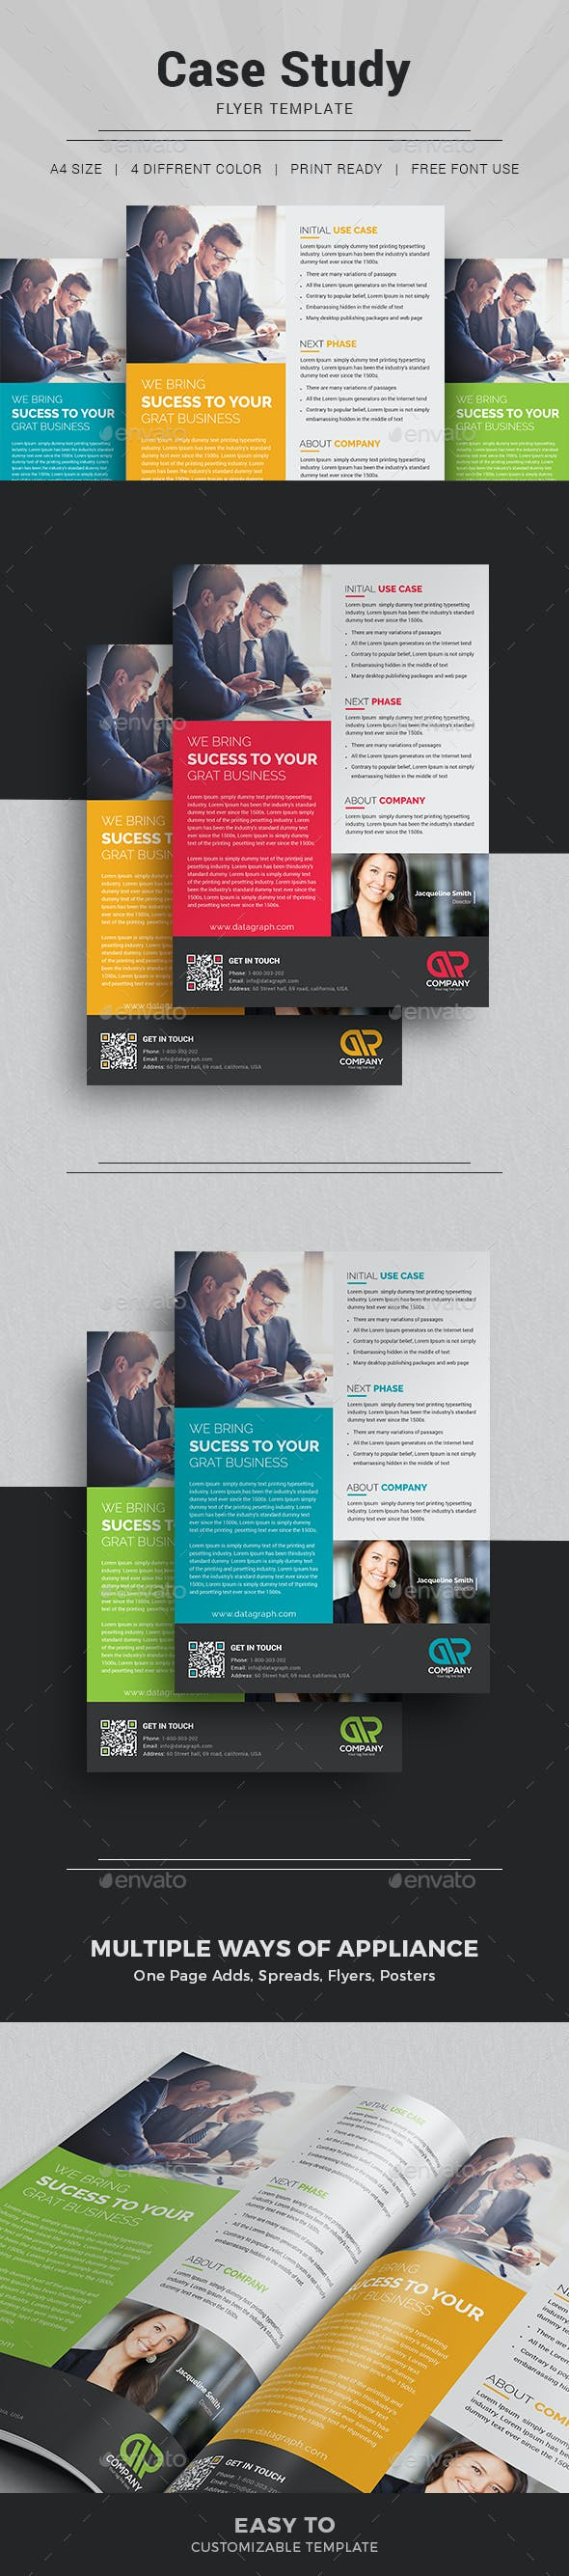 Case Study Template I Flyer By Themedevisers Graphicriver